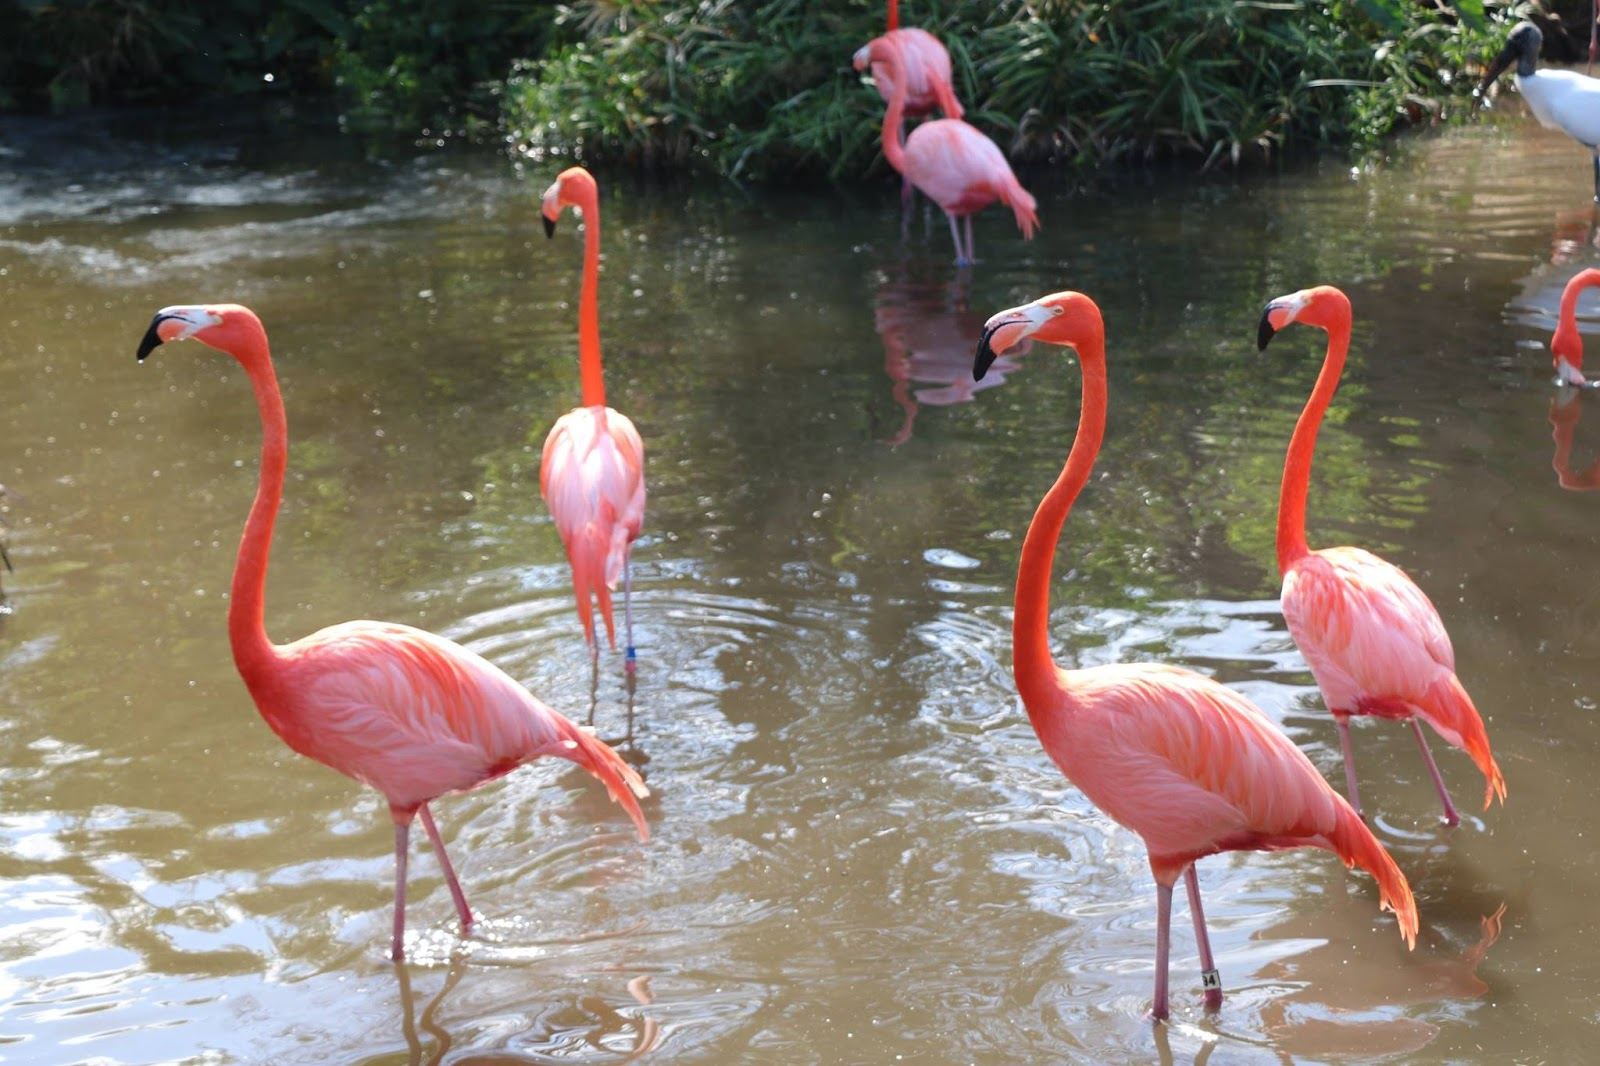 Flamingos in Florida